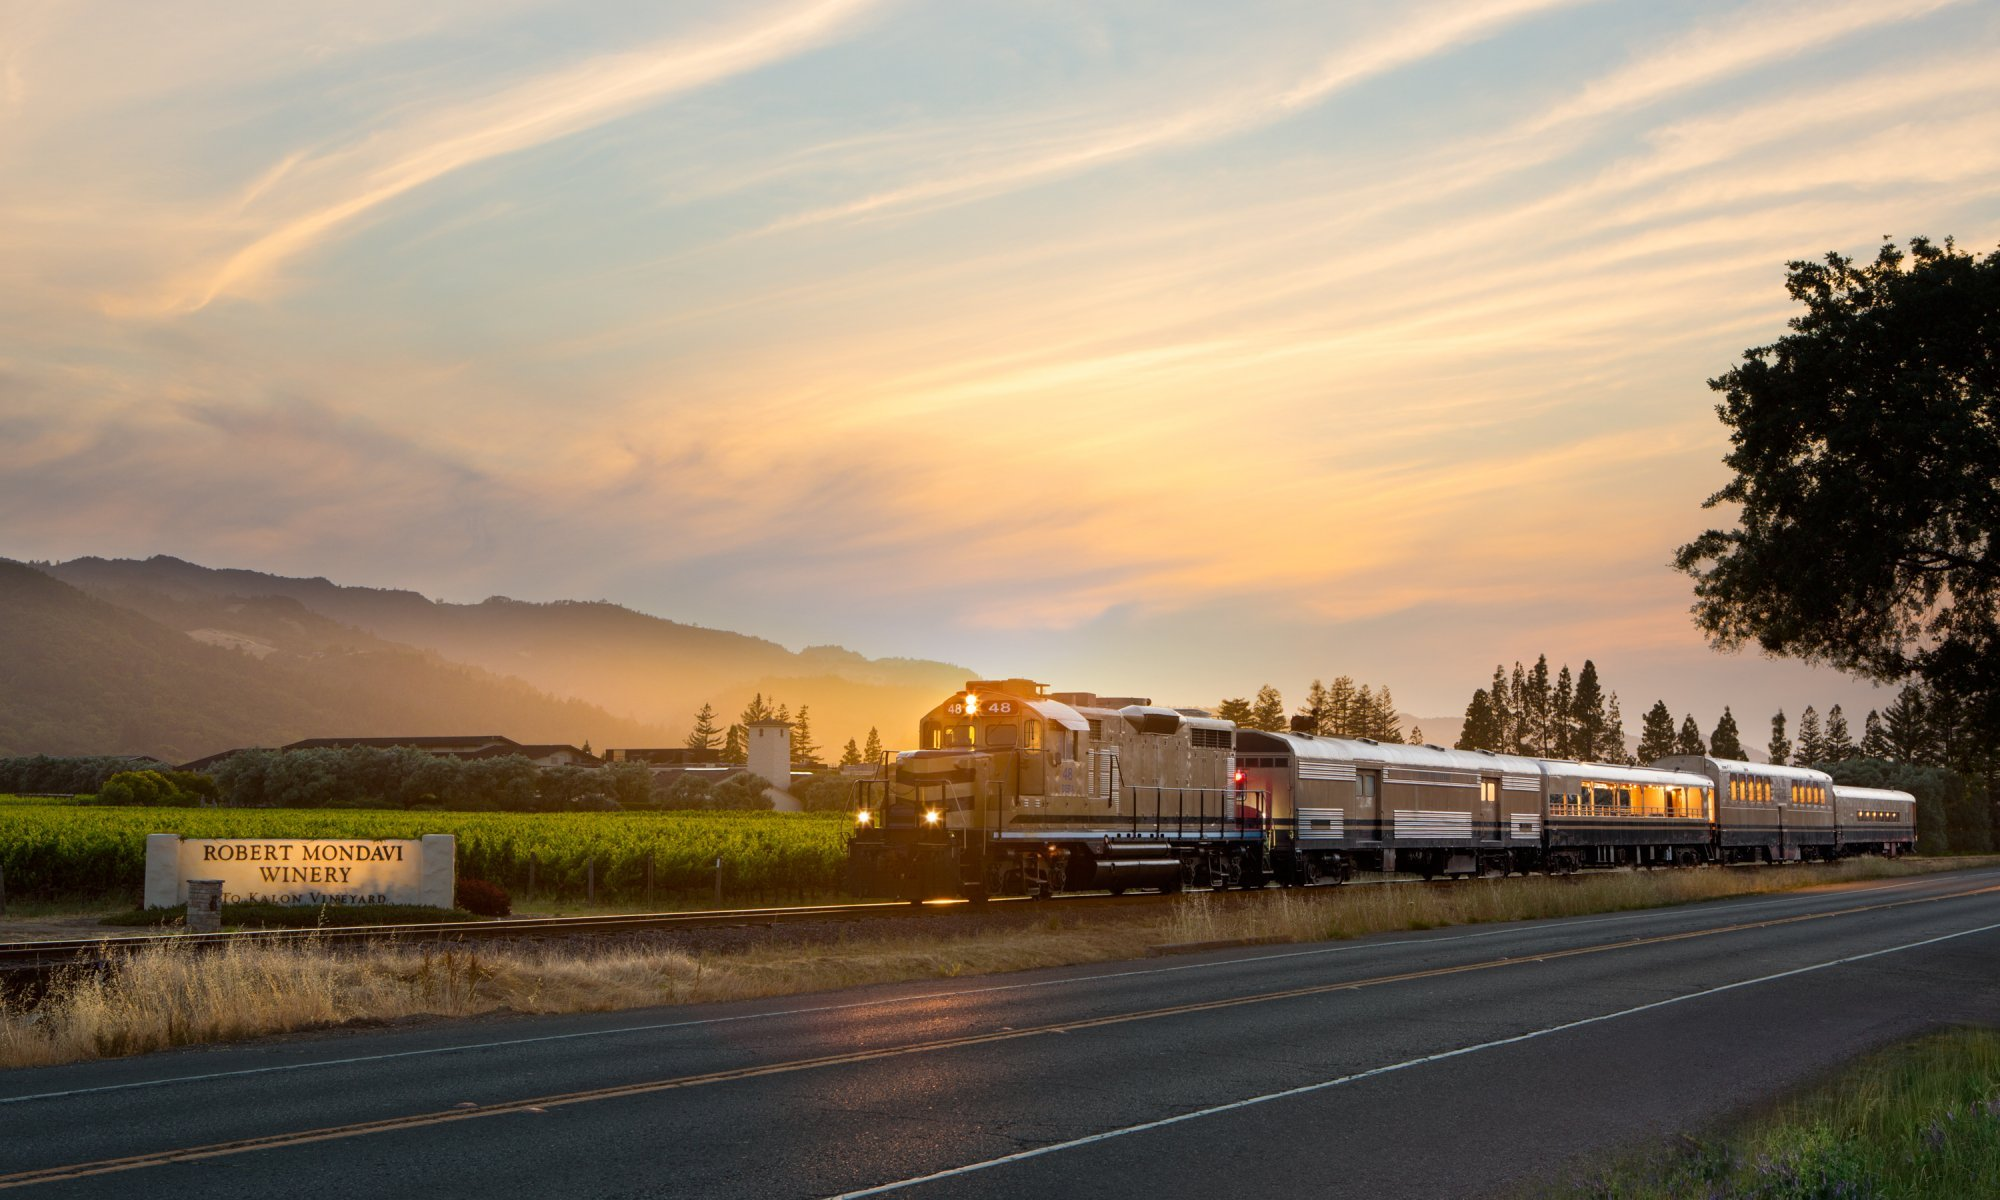 Napa Valley Wine Train pulling up to Robert Mondavi Winery at sunset